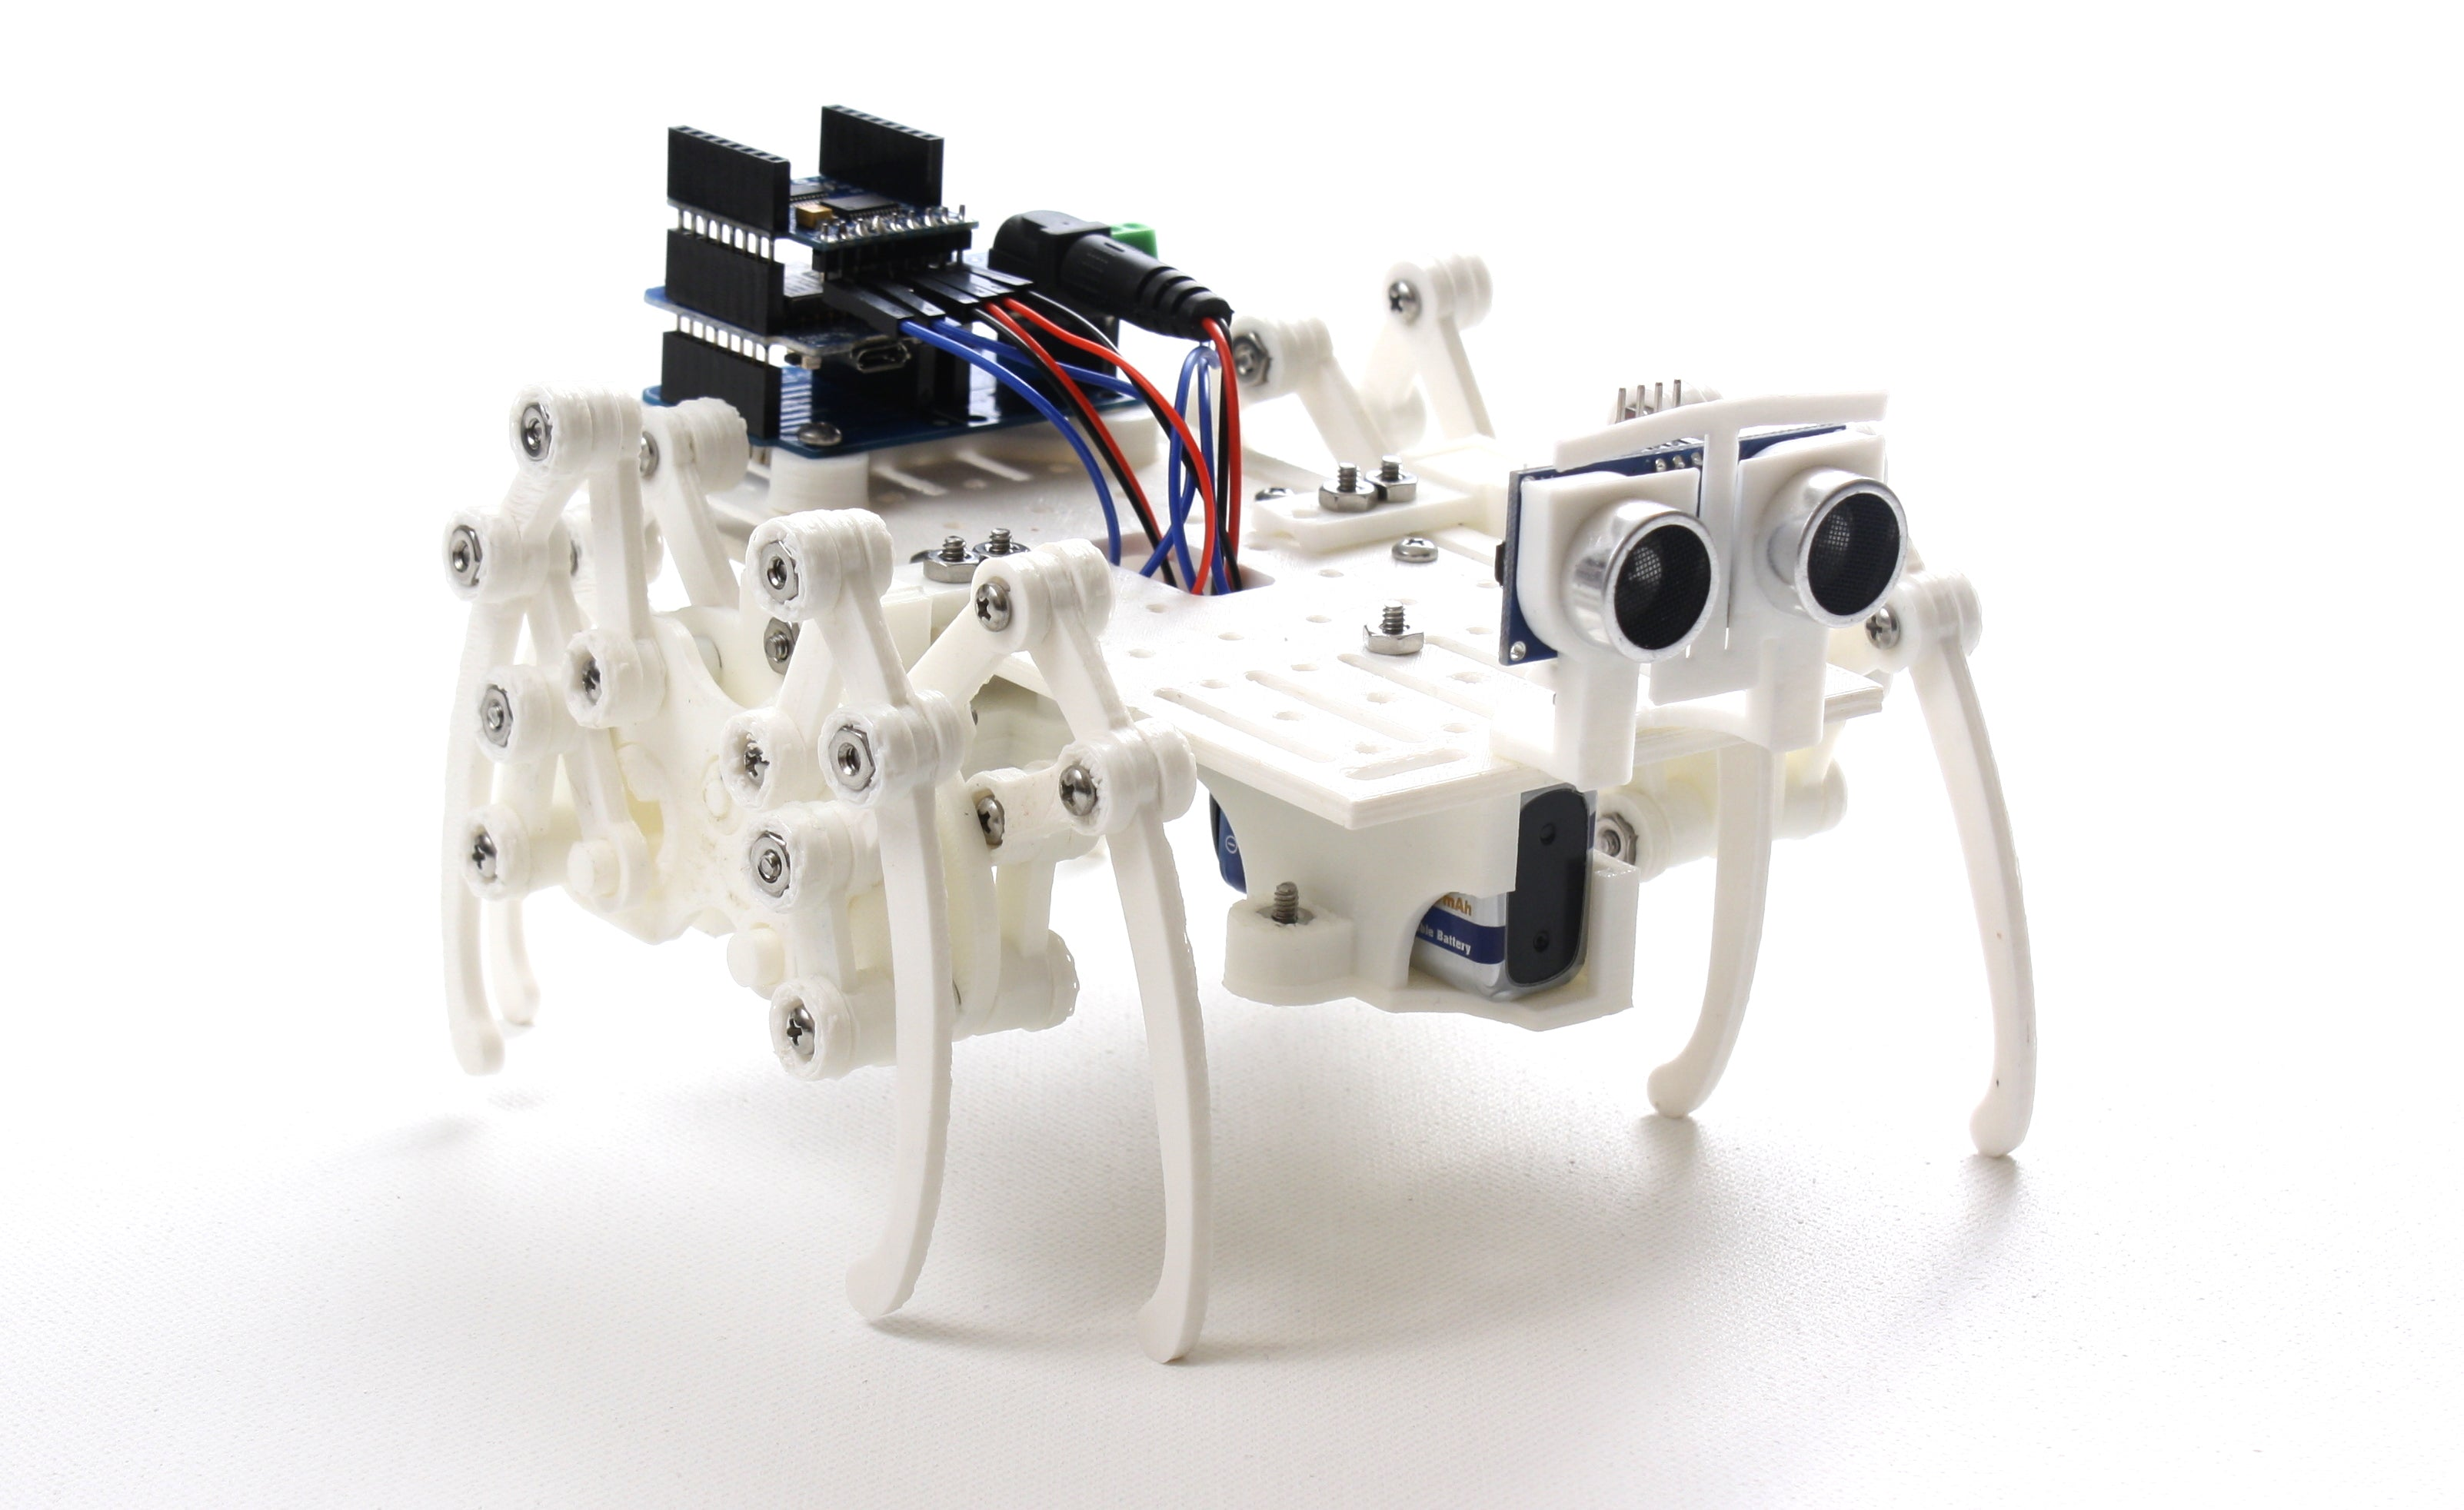 Spider Robot From Gadgets That Go